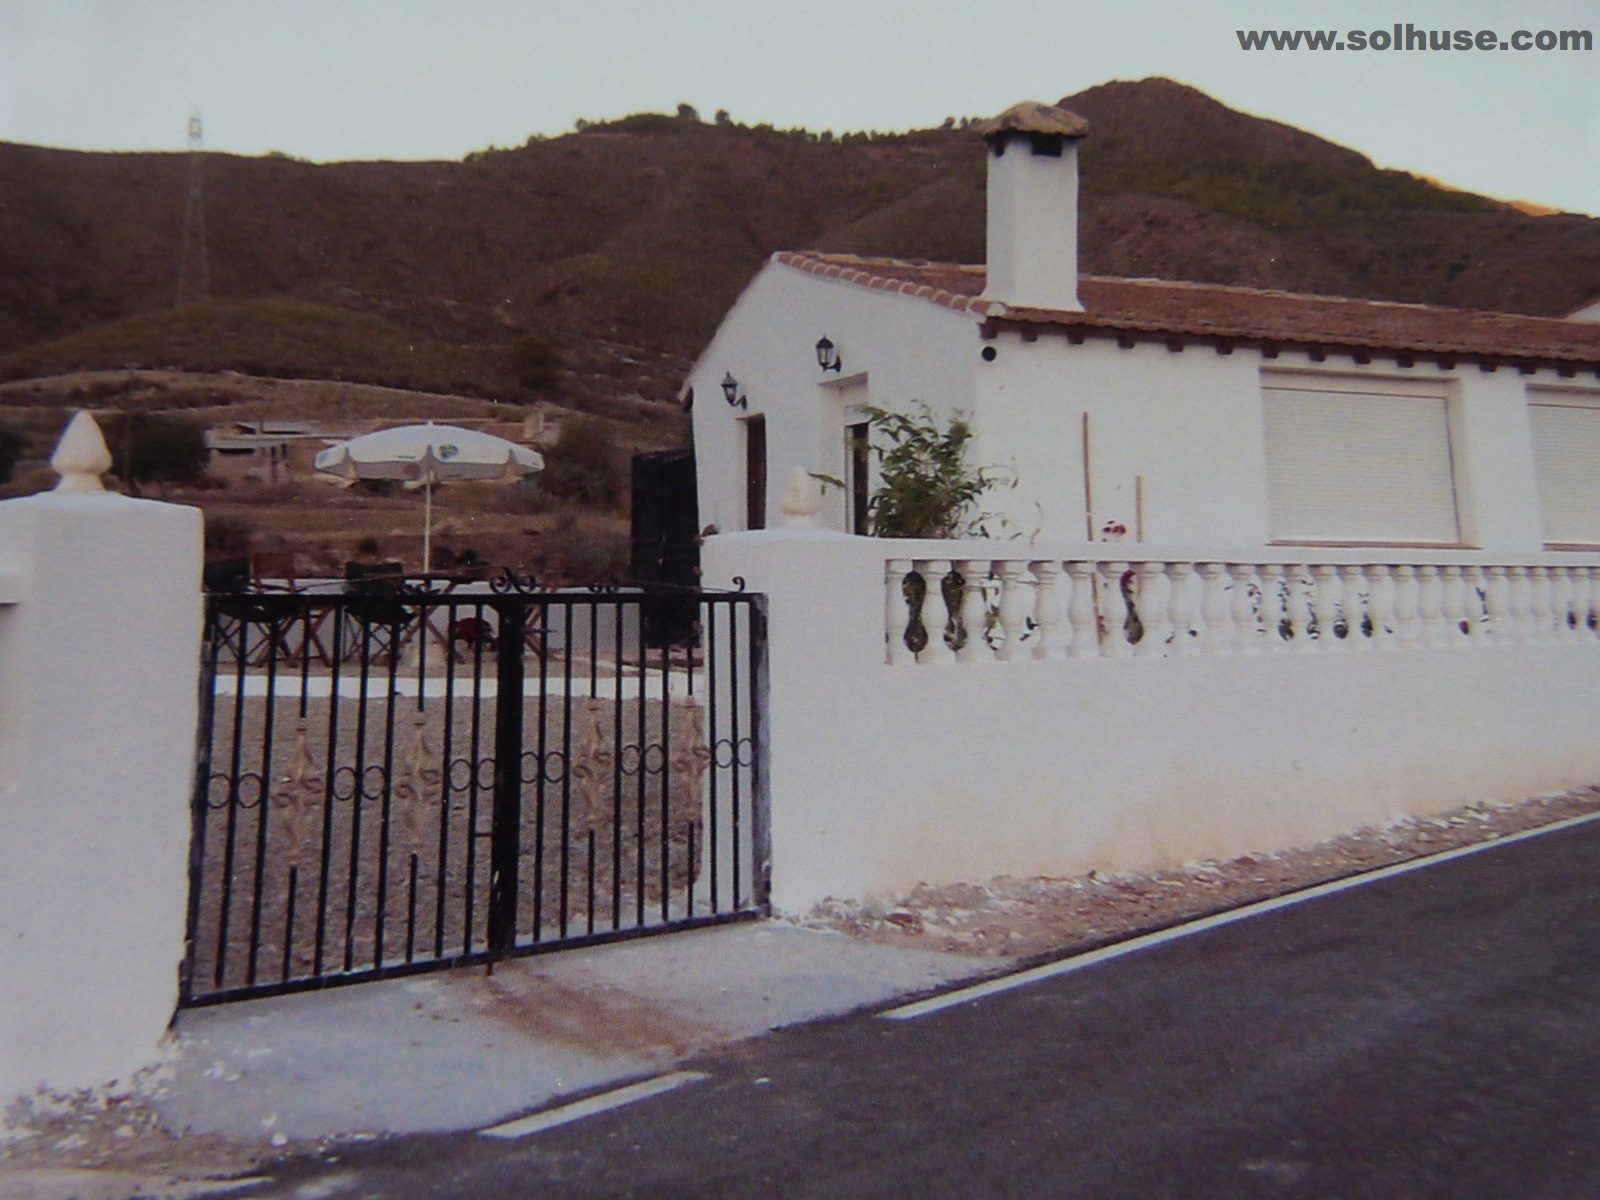 SPACIOUS FINCA, 3 BEDROOMS, 10 MINUTES DRIVE TO BEACH